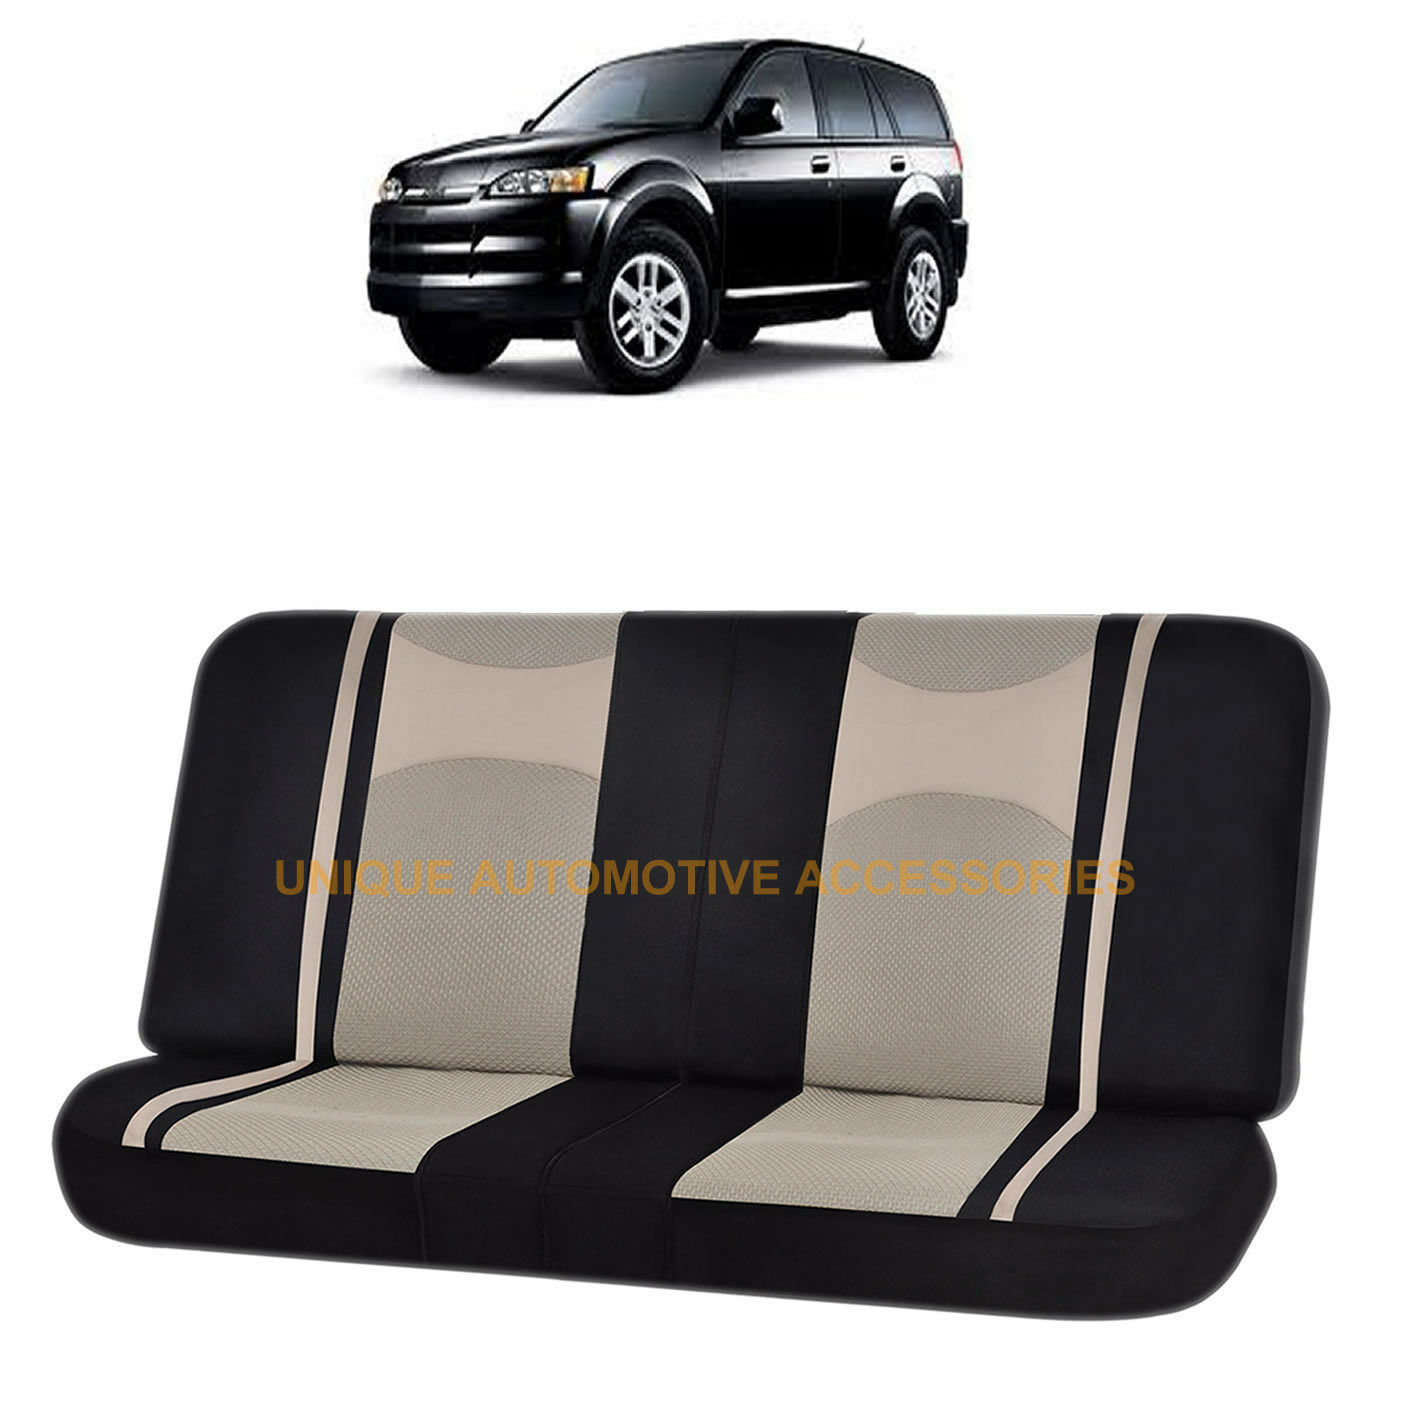 Wondrous Details About Beige Black Poly Mesh Net 2Pc Split Bench Seat Cover For Isuzu Rodeo Trooper Cjindustries Chair Design For Home Cjindustriesco